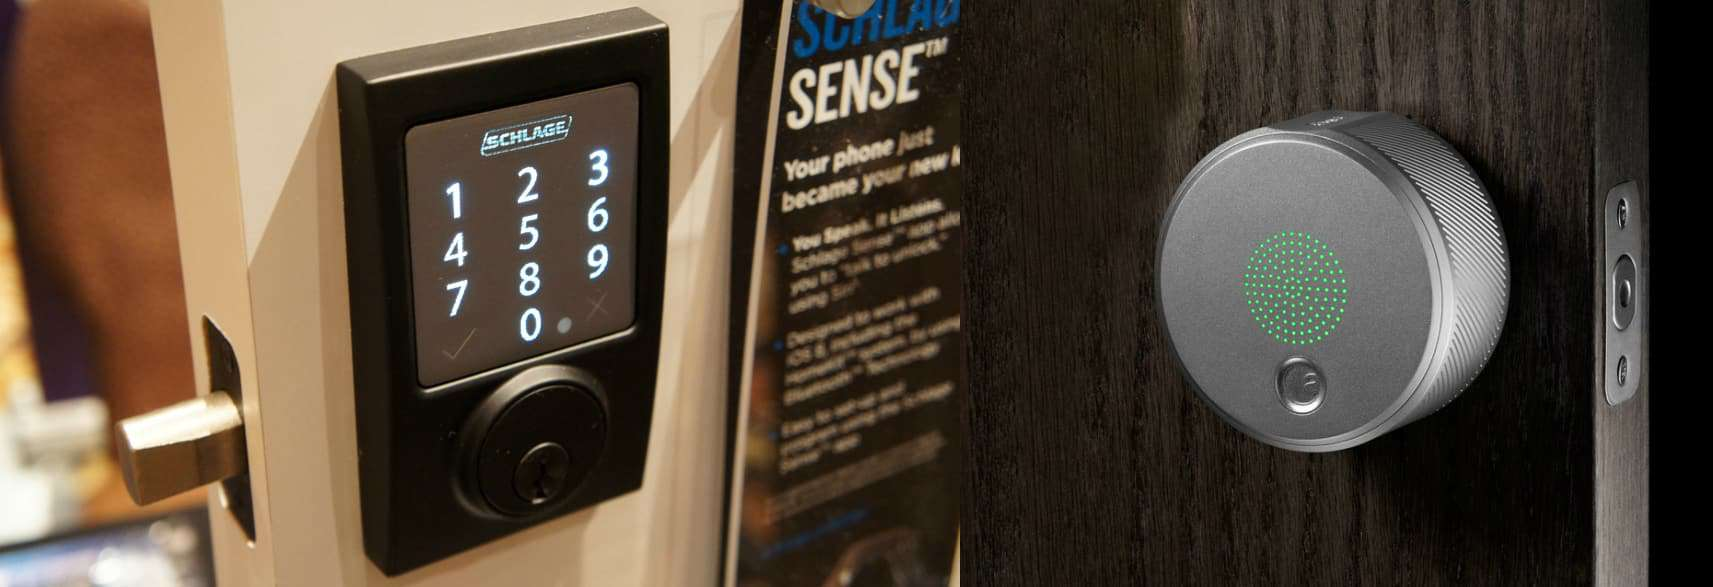 August Smart Lock Pro And Schlage Sense Smart